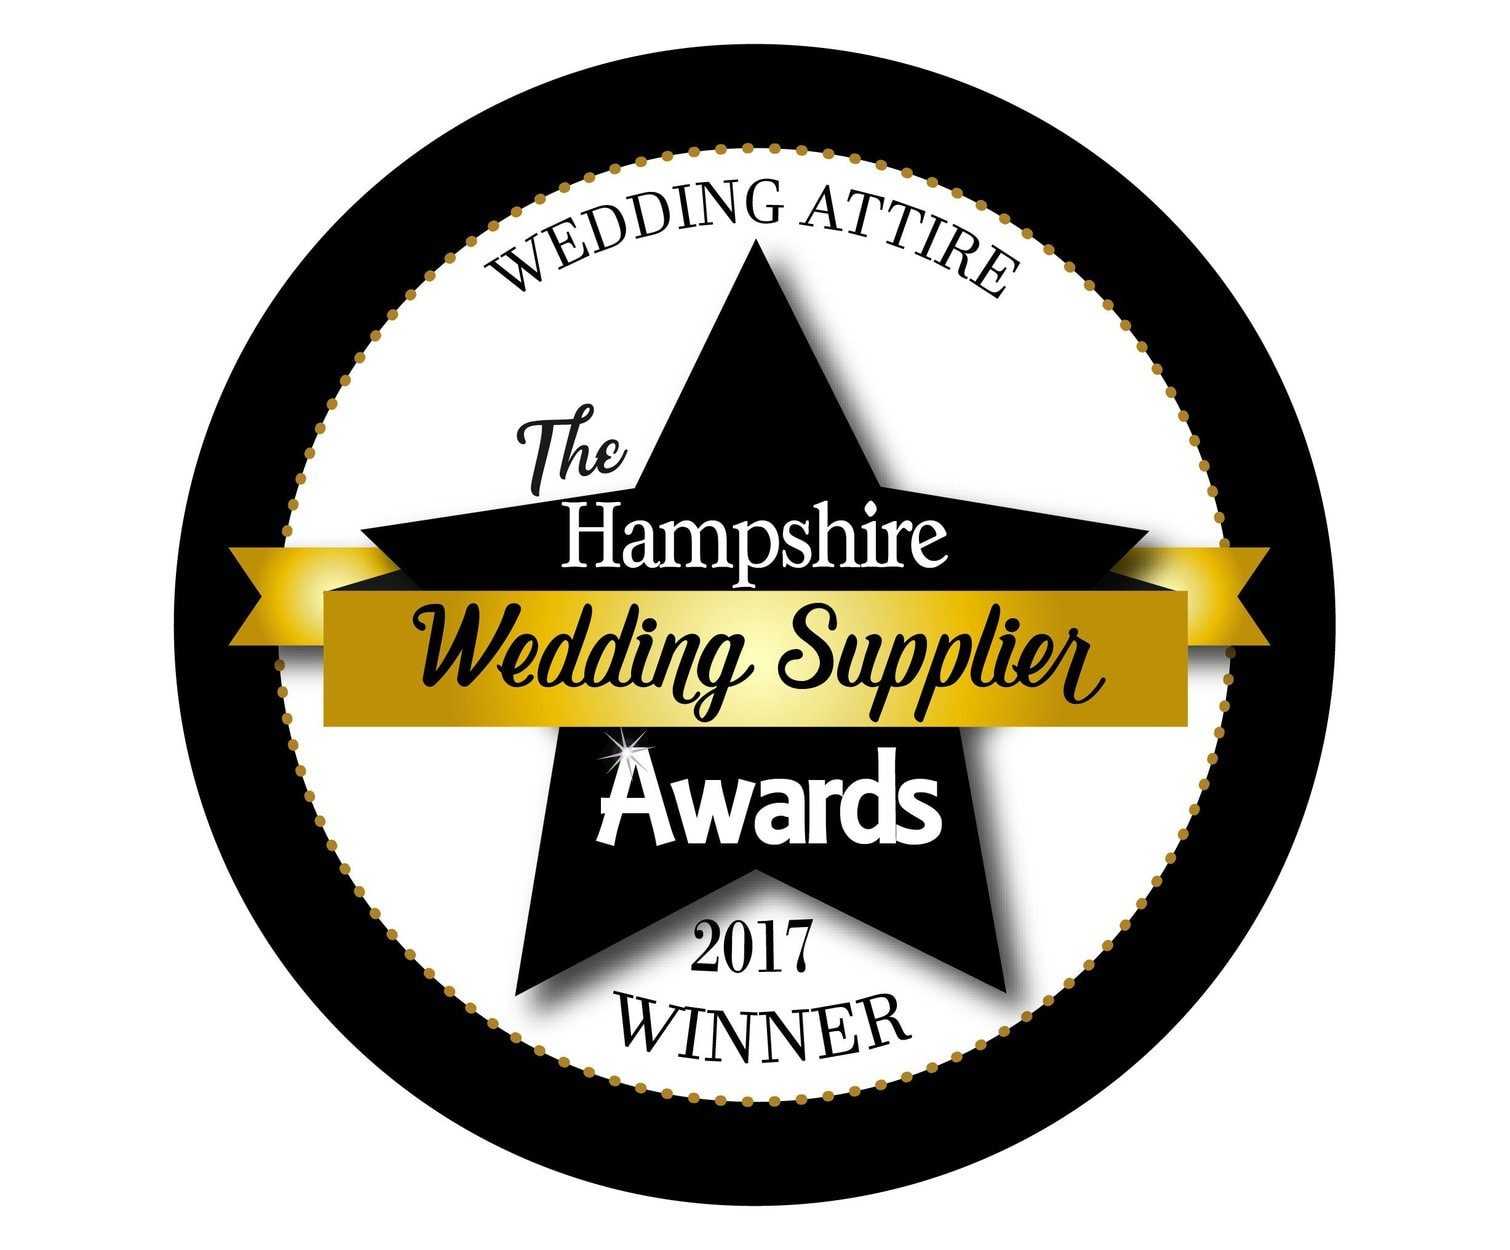 Winner Best Bridal Attire in Hampshire 2017